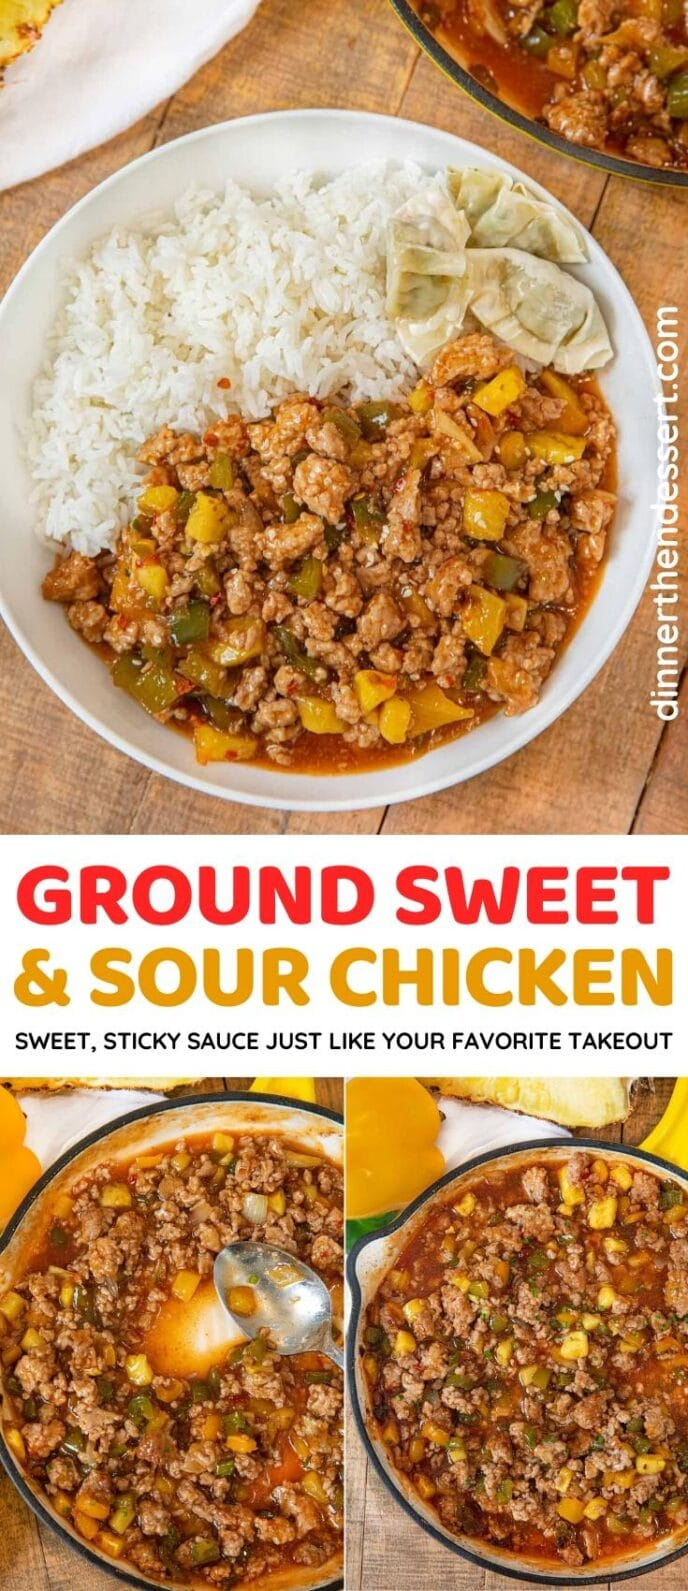 Ground Sweet and Sour Chicken collage